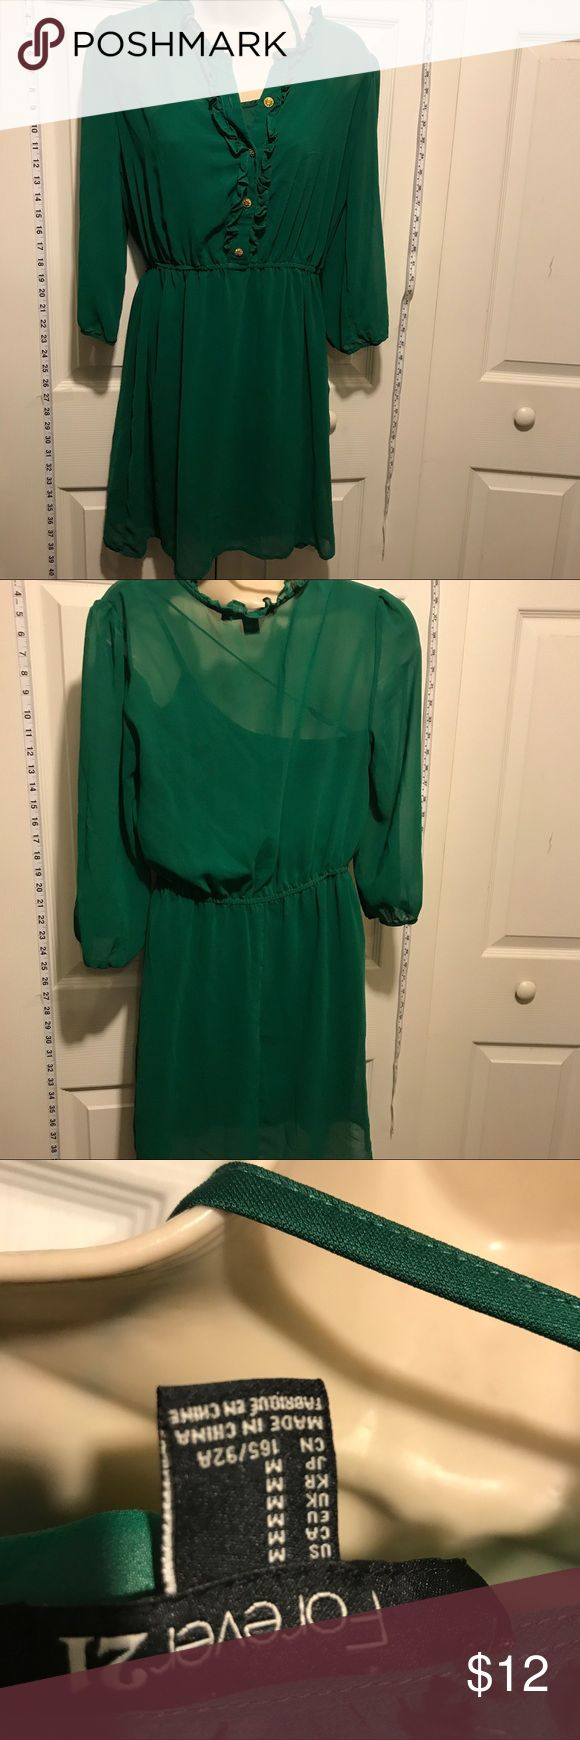 30% Off Bundles Emerald Green Chiffon Dress Gold buttons! Dress has a liner dress underneath. Great condition. No marks or stains. Add three more items to your bundle for 30% off. Forever 21 Dresses